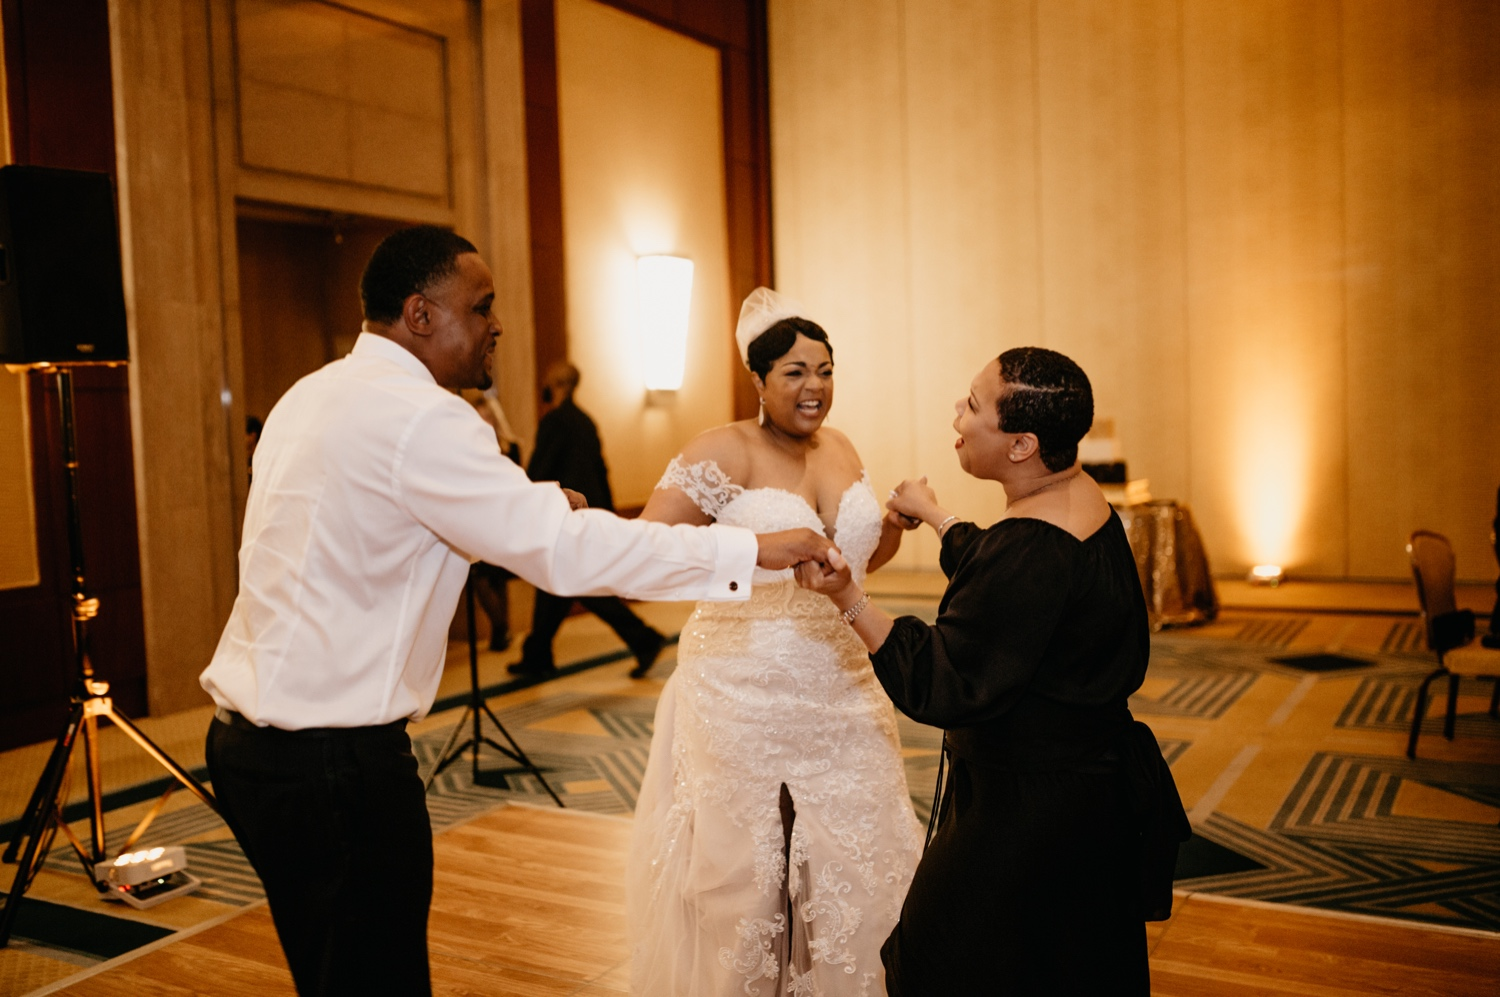 70_Ritz-carlton-wedding_charlotteNC_charlotteweddingphotographer.jpg